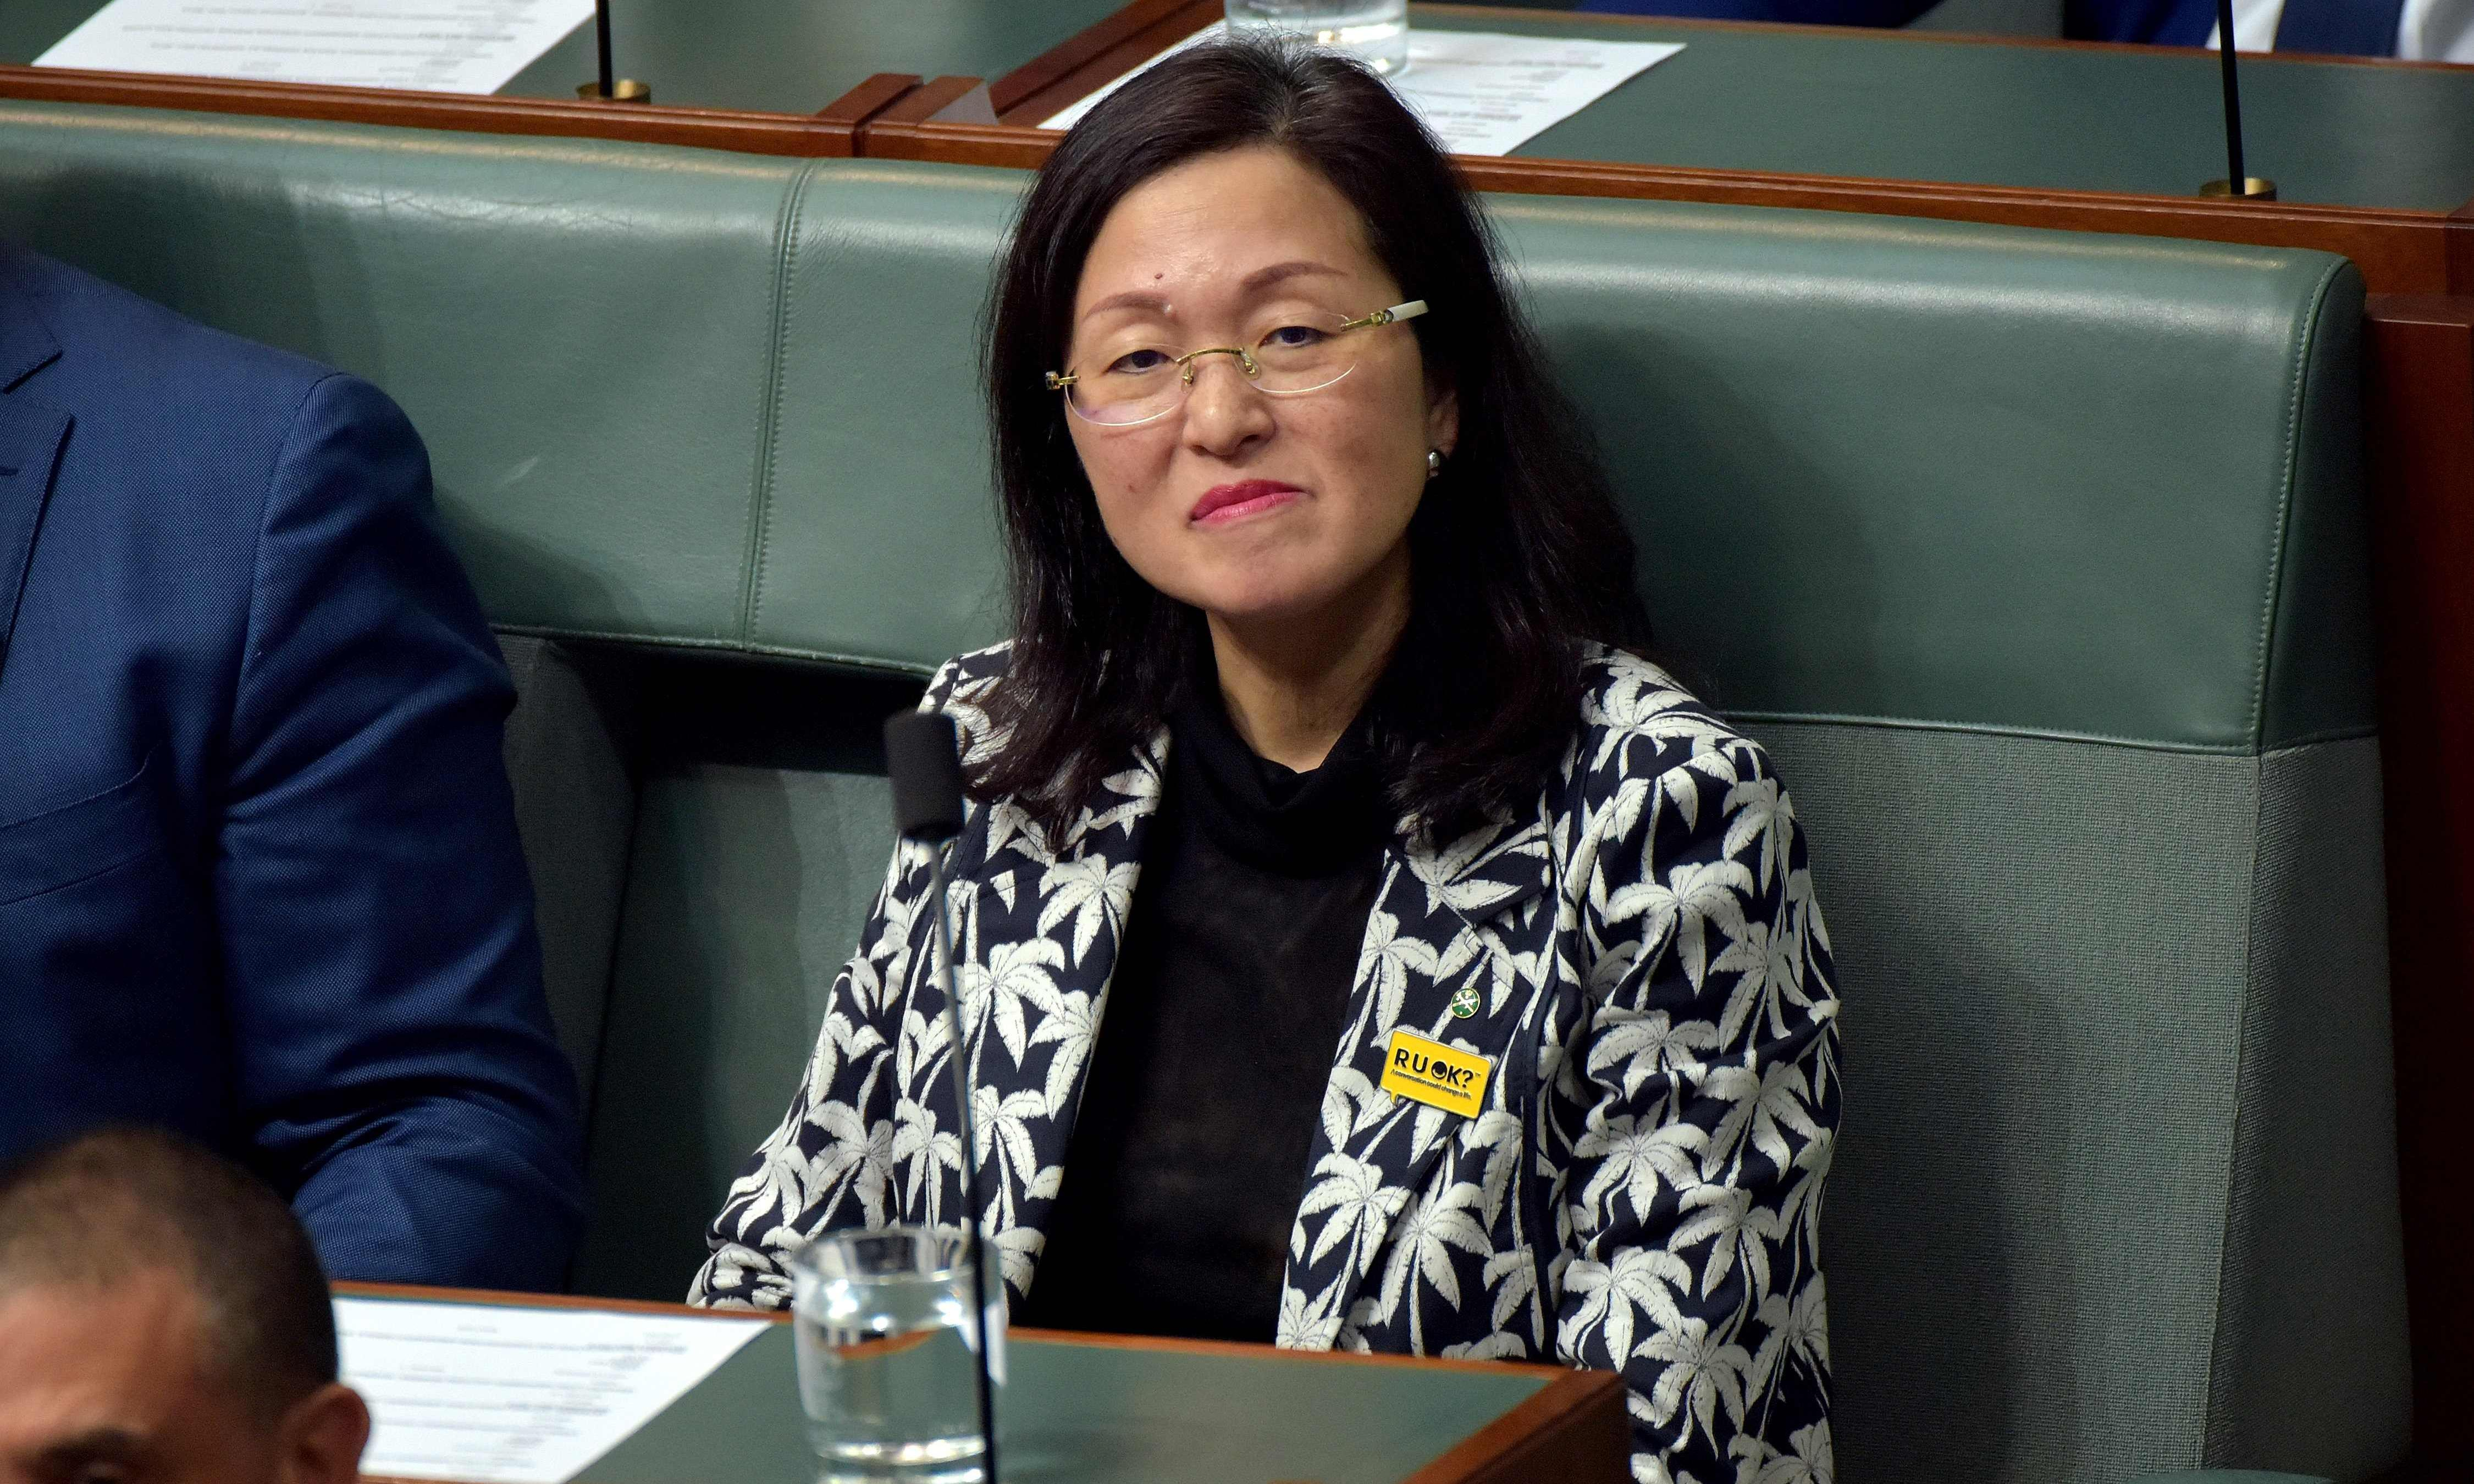 Scott Morrison defends Gladys Liu on WeChat but stonewalls further questions